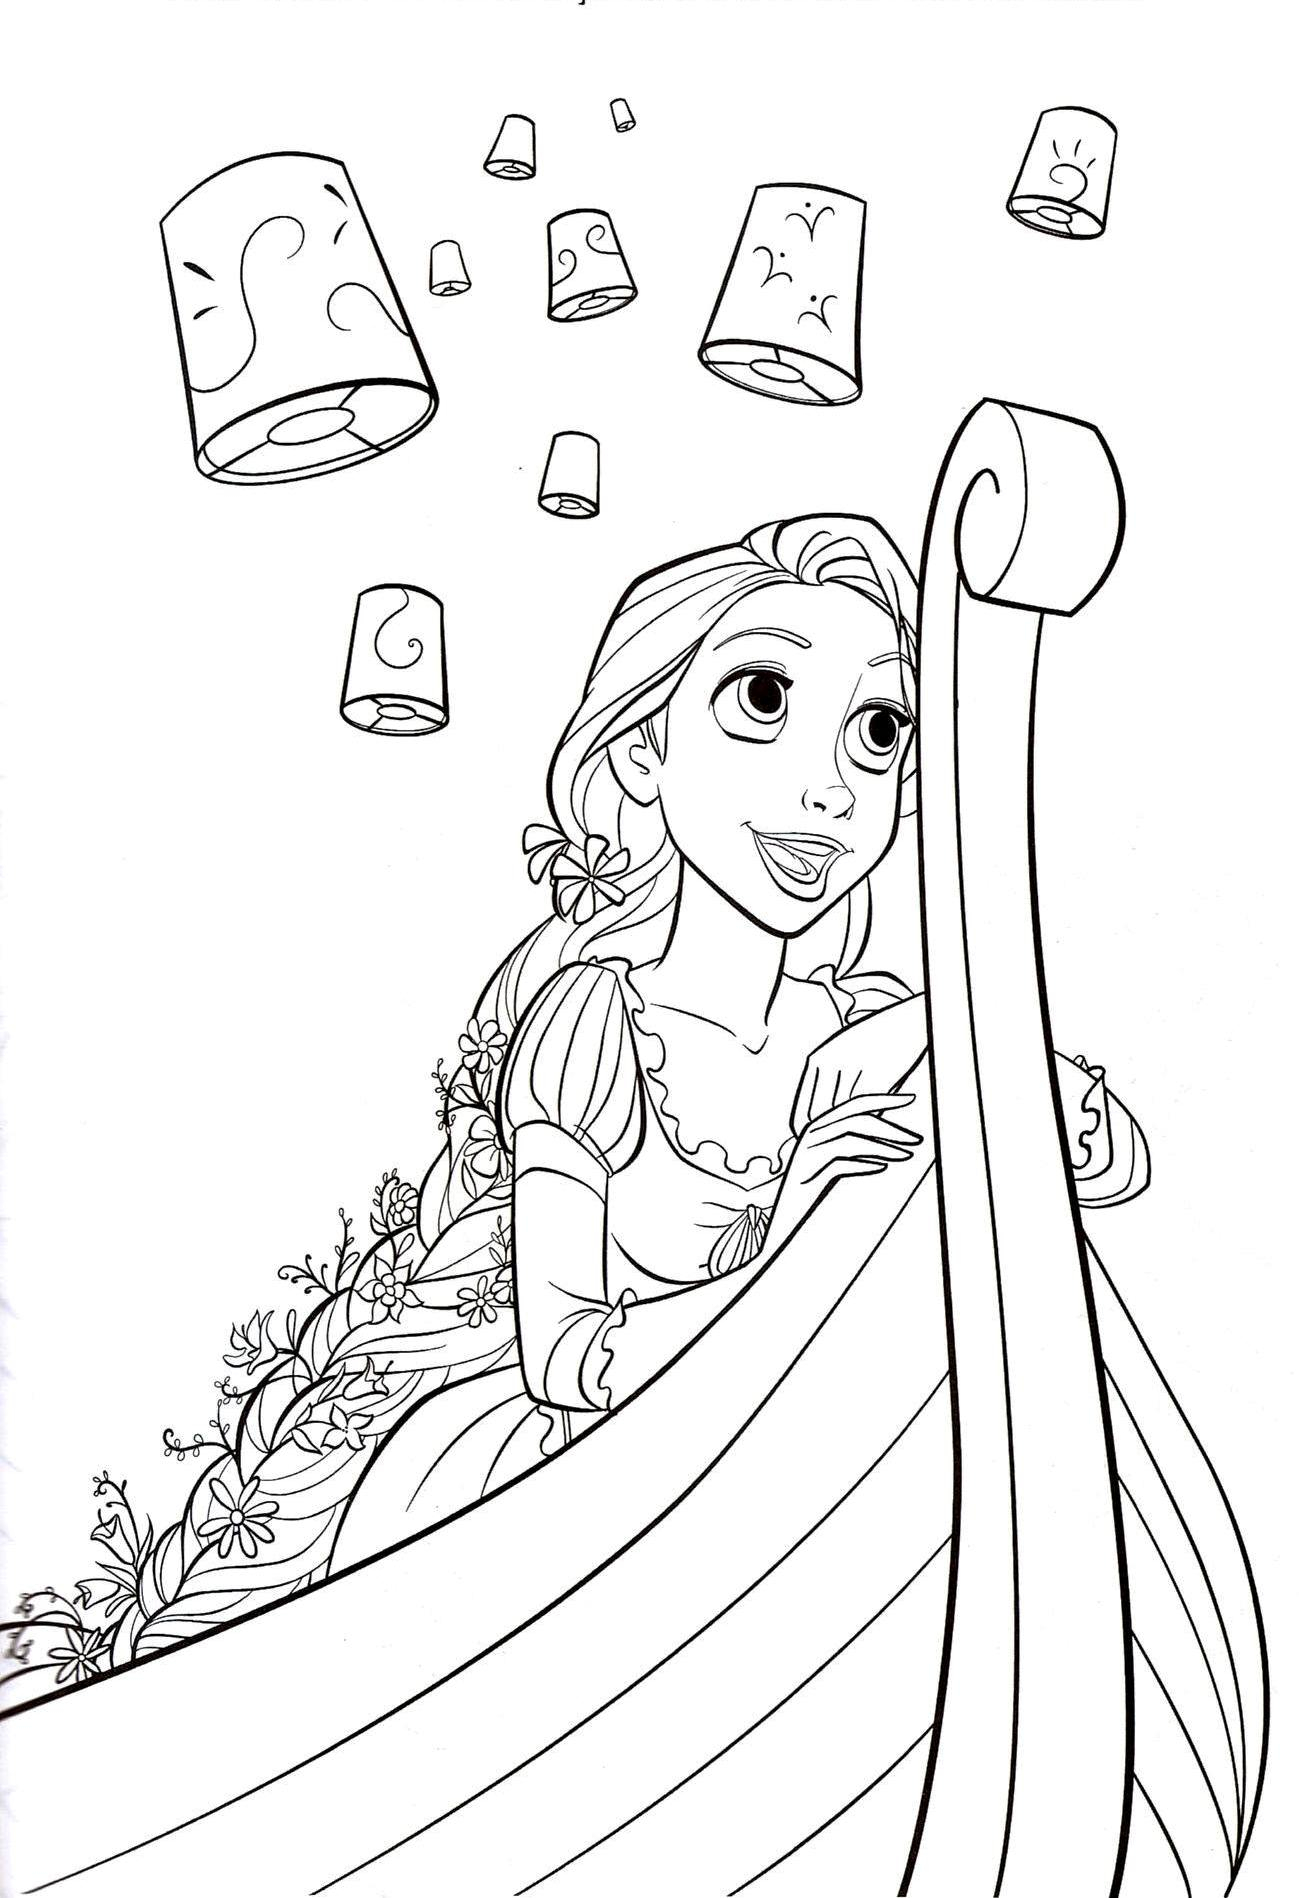 Maximus Rapunzel Ausmalbilder : Disney Rapunzel Drawing At Getdrawings Com Free For Personal Use